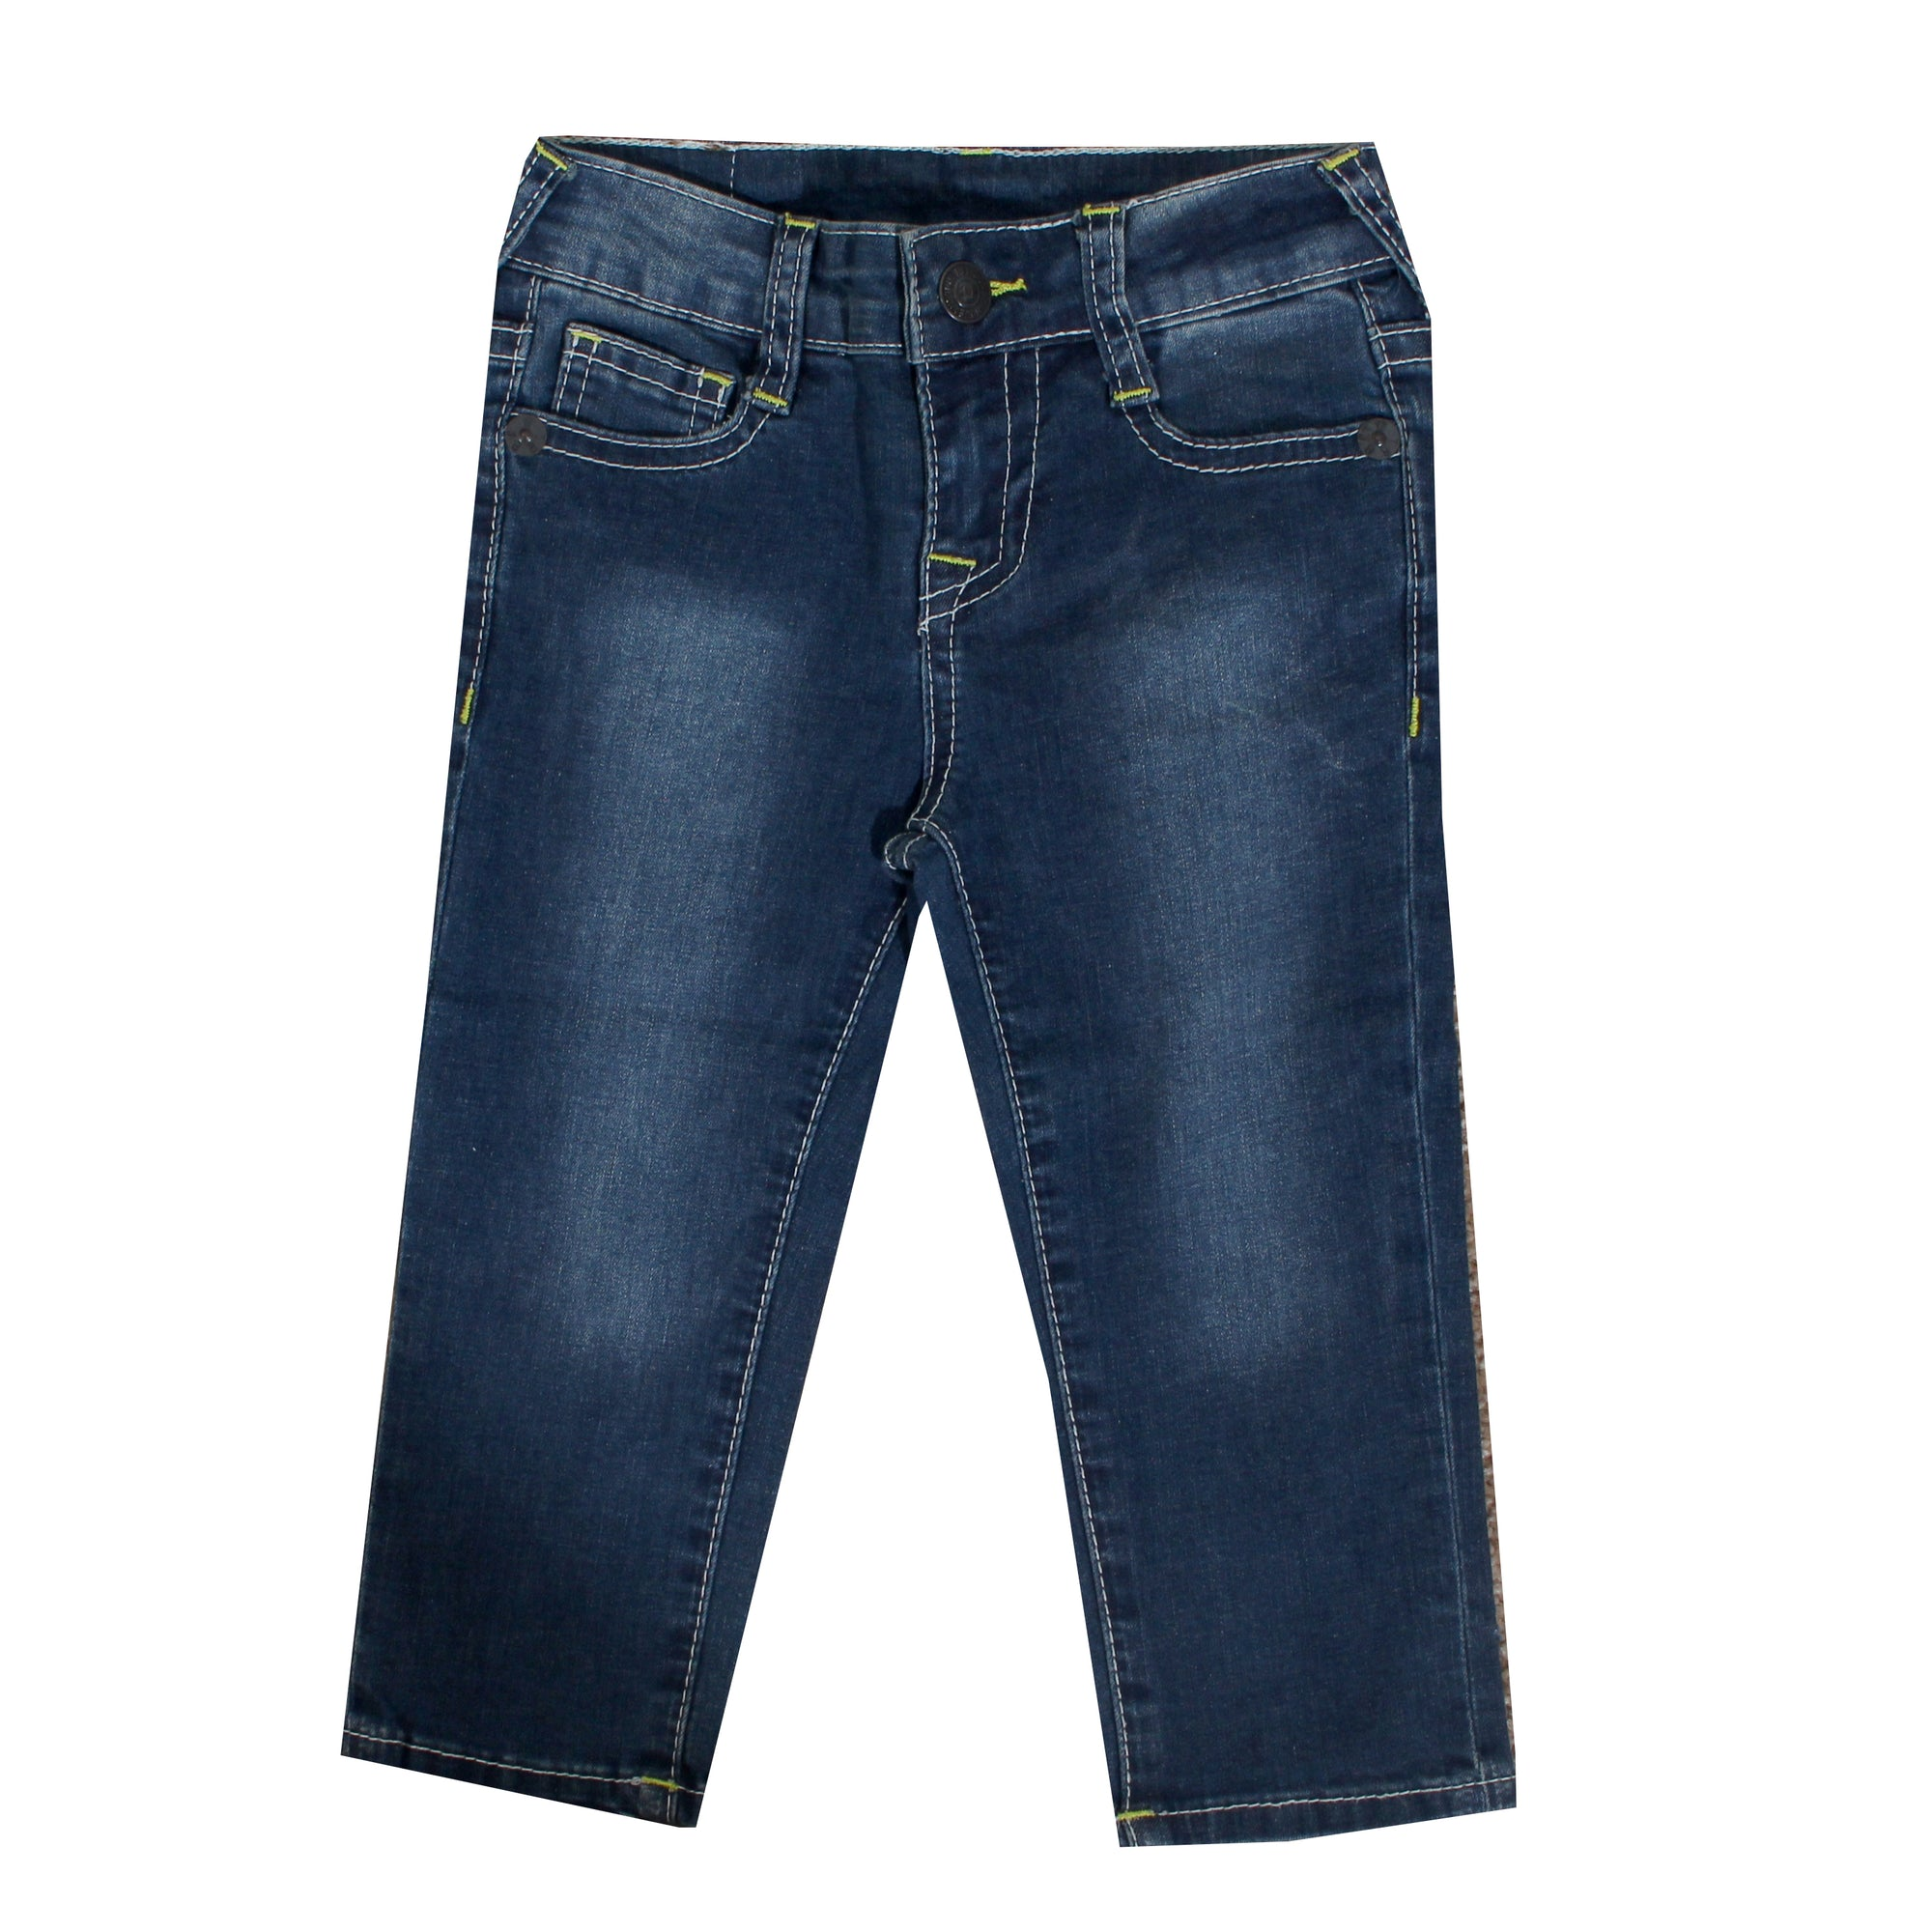 Kids True Religion Jeans with Green Stitching